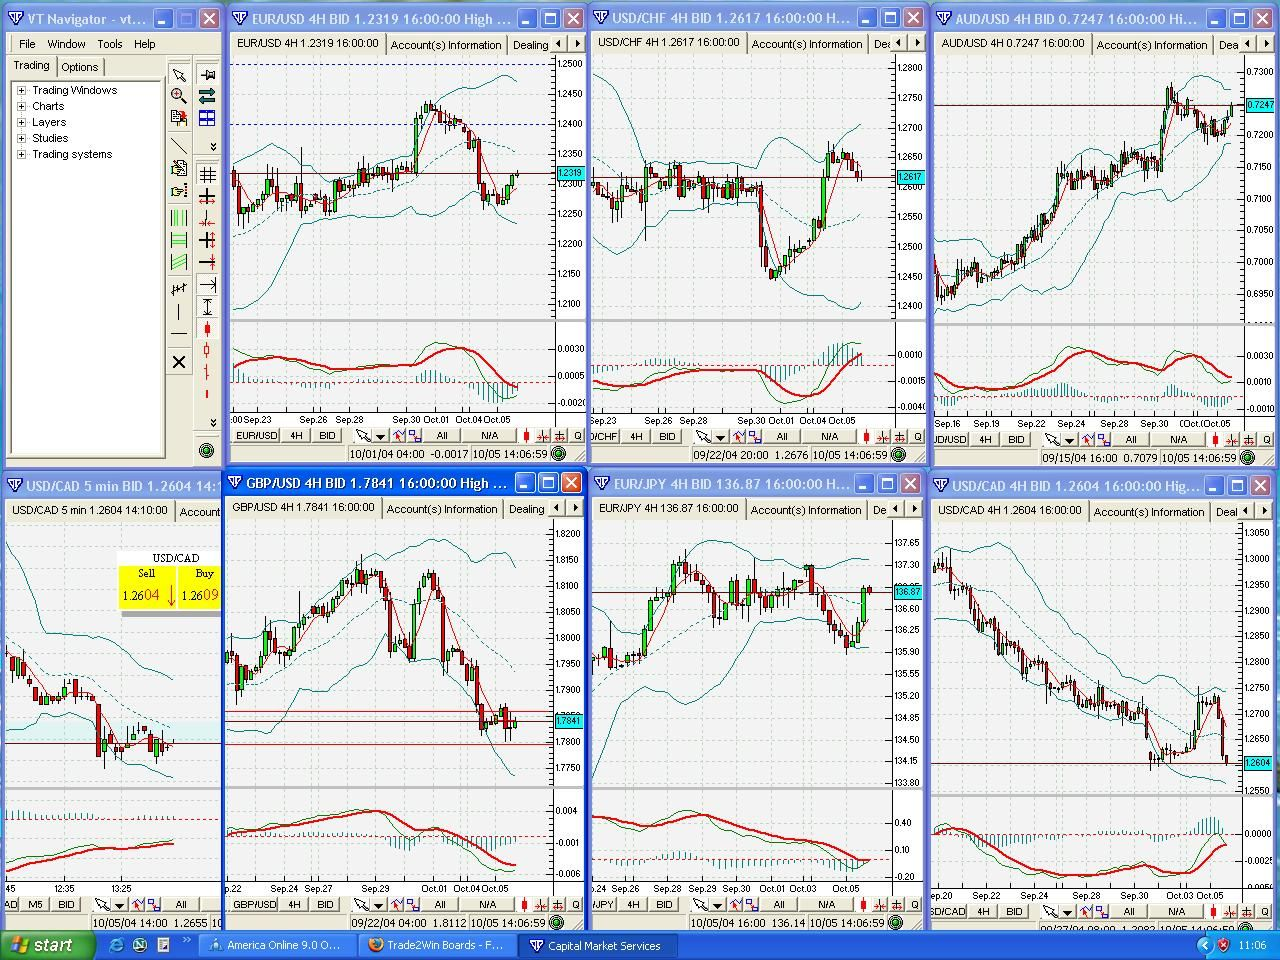 All Fx Market Chart Usdcad Eurjpy Gbpusd Usdchf Eurusd Audusd Wallper Pictures On Pc Monitor